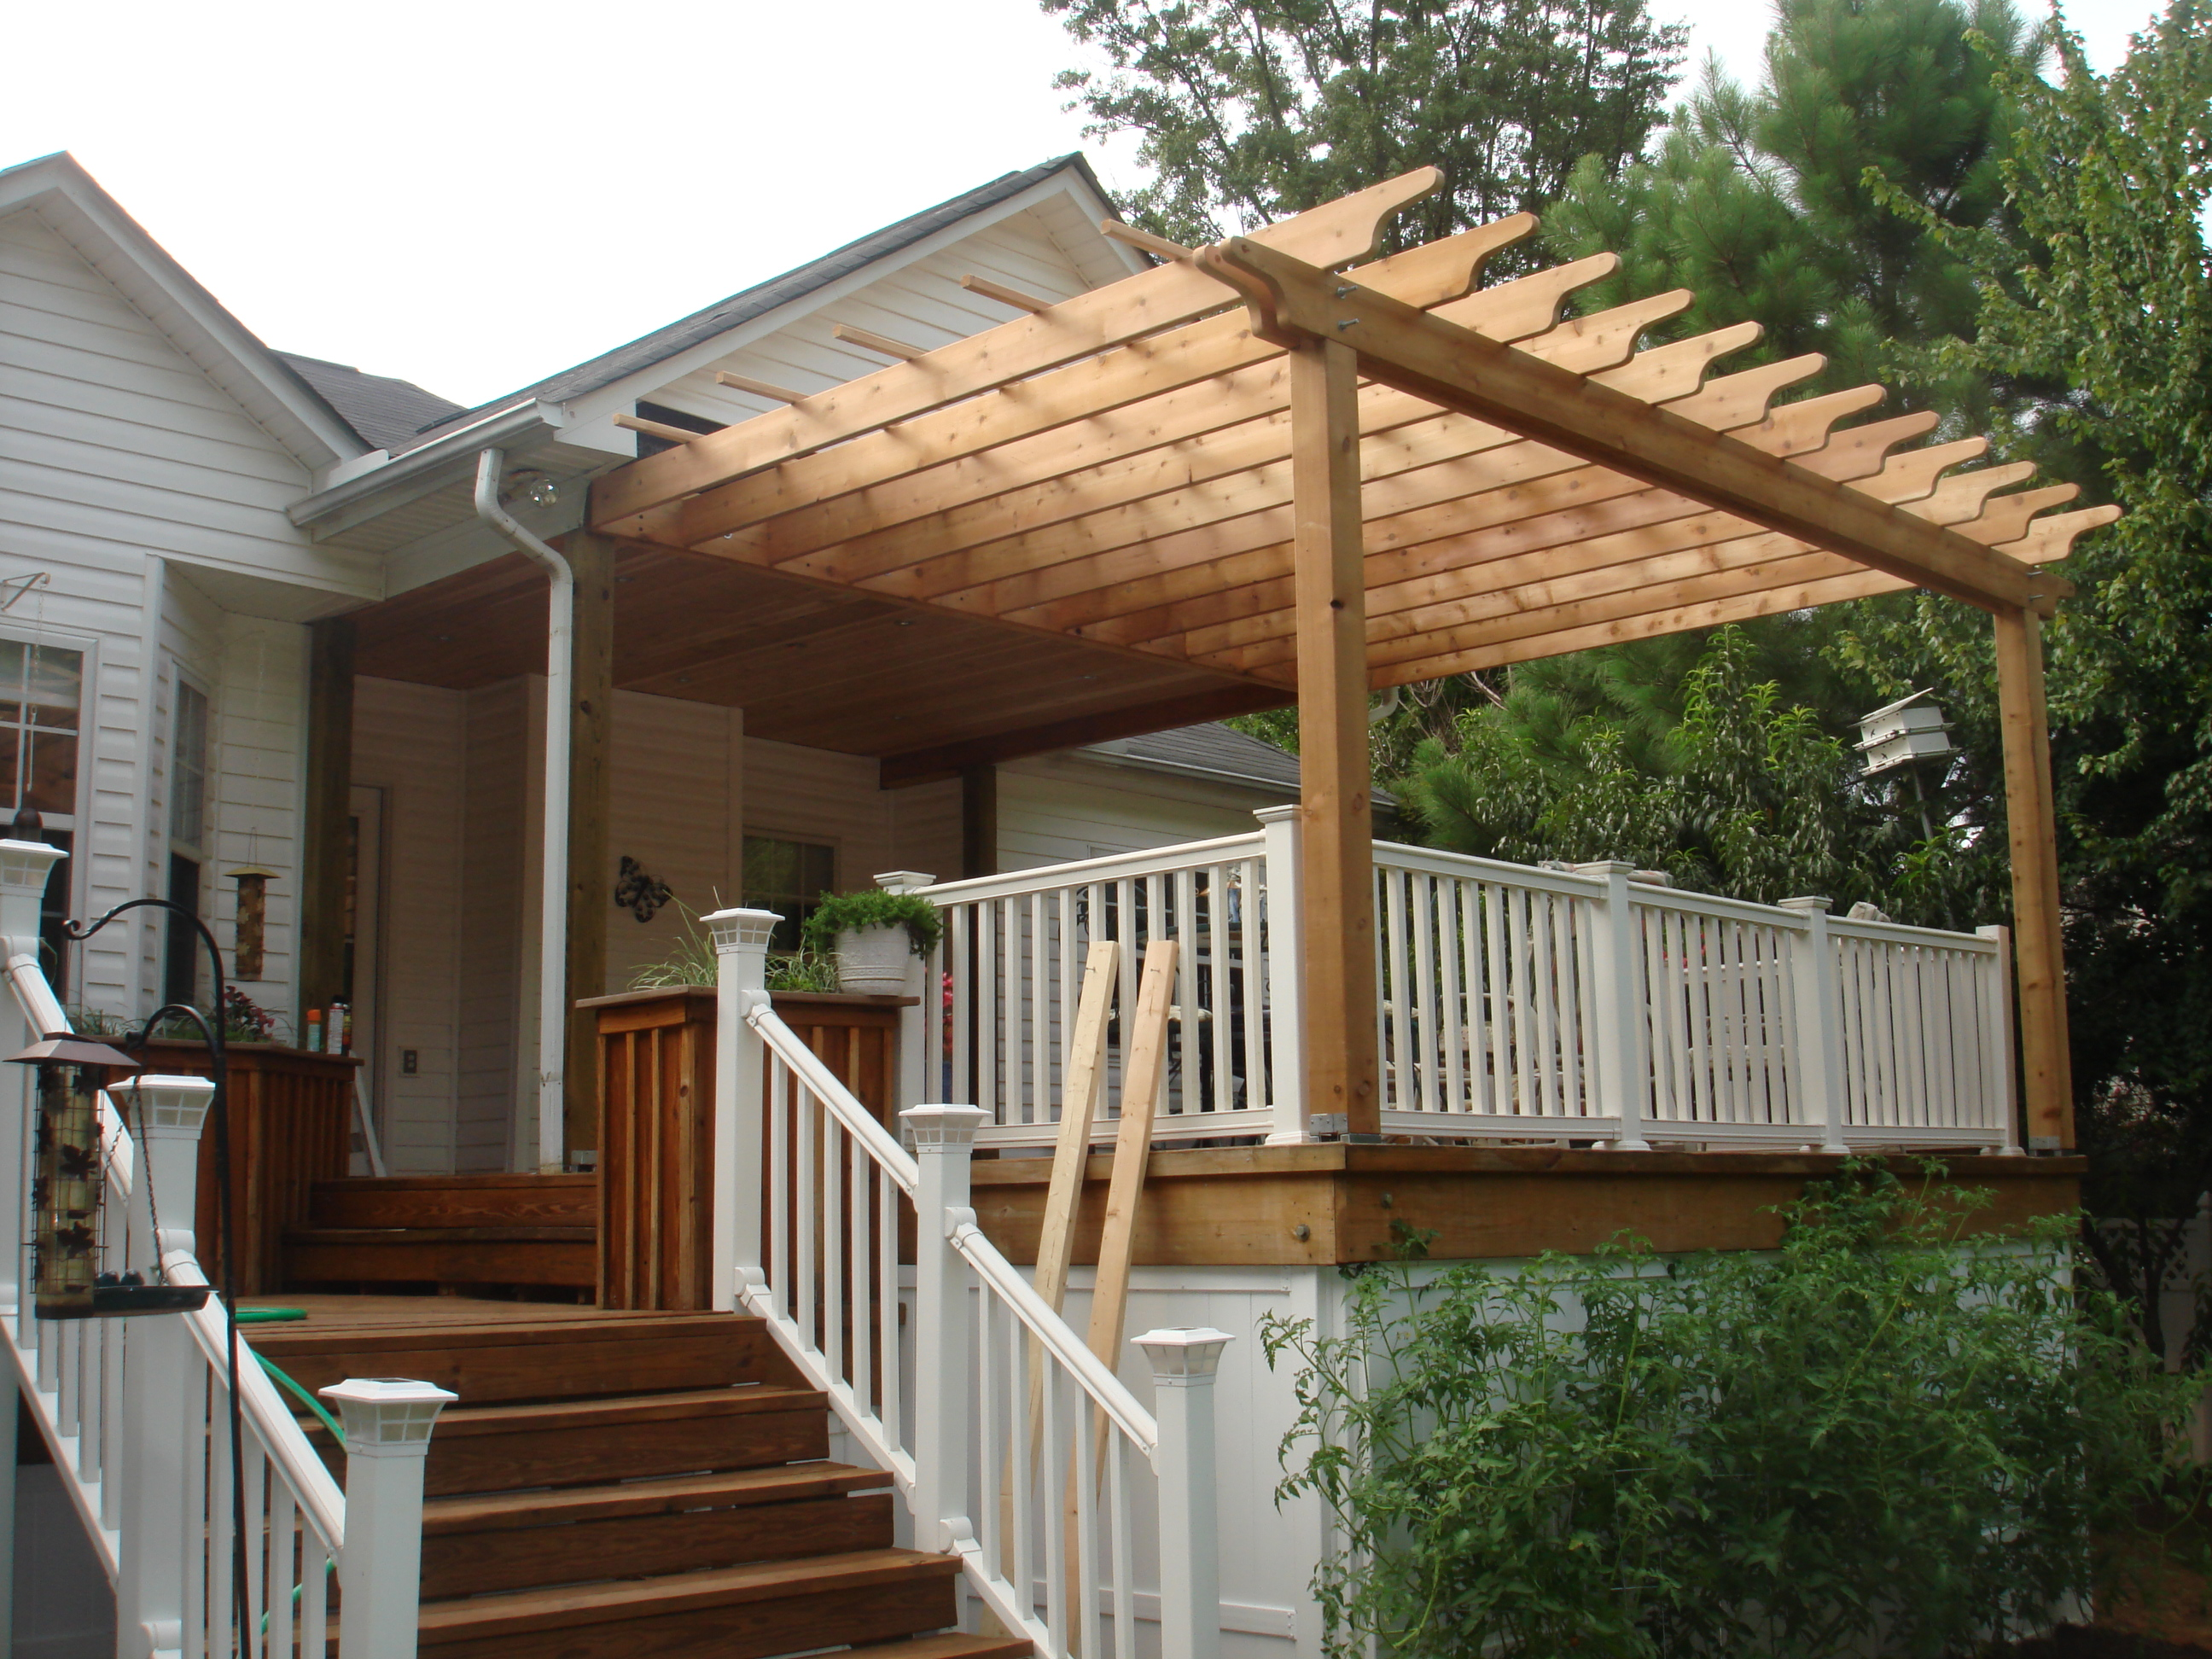 Pergola And Porch Living The Good Life In Gaston County